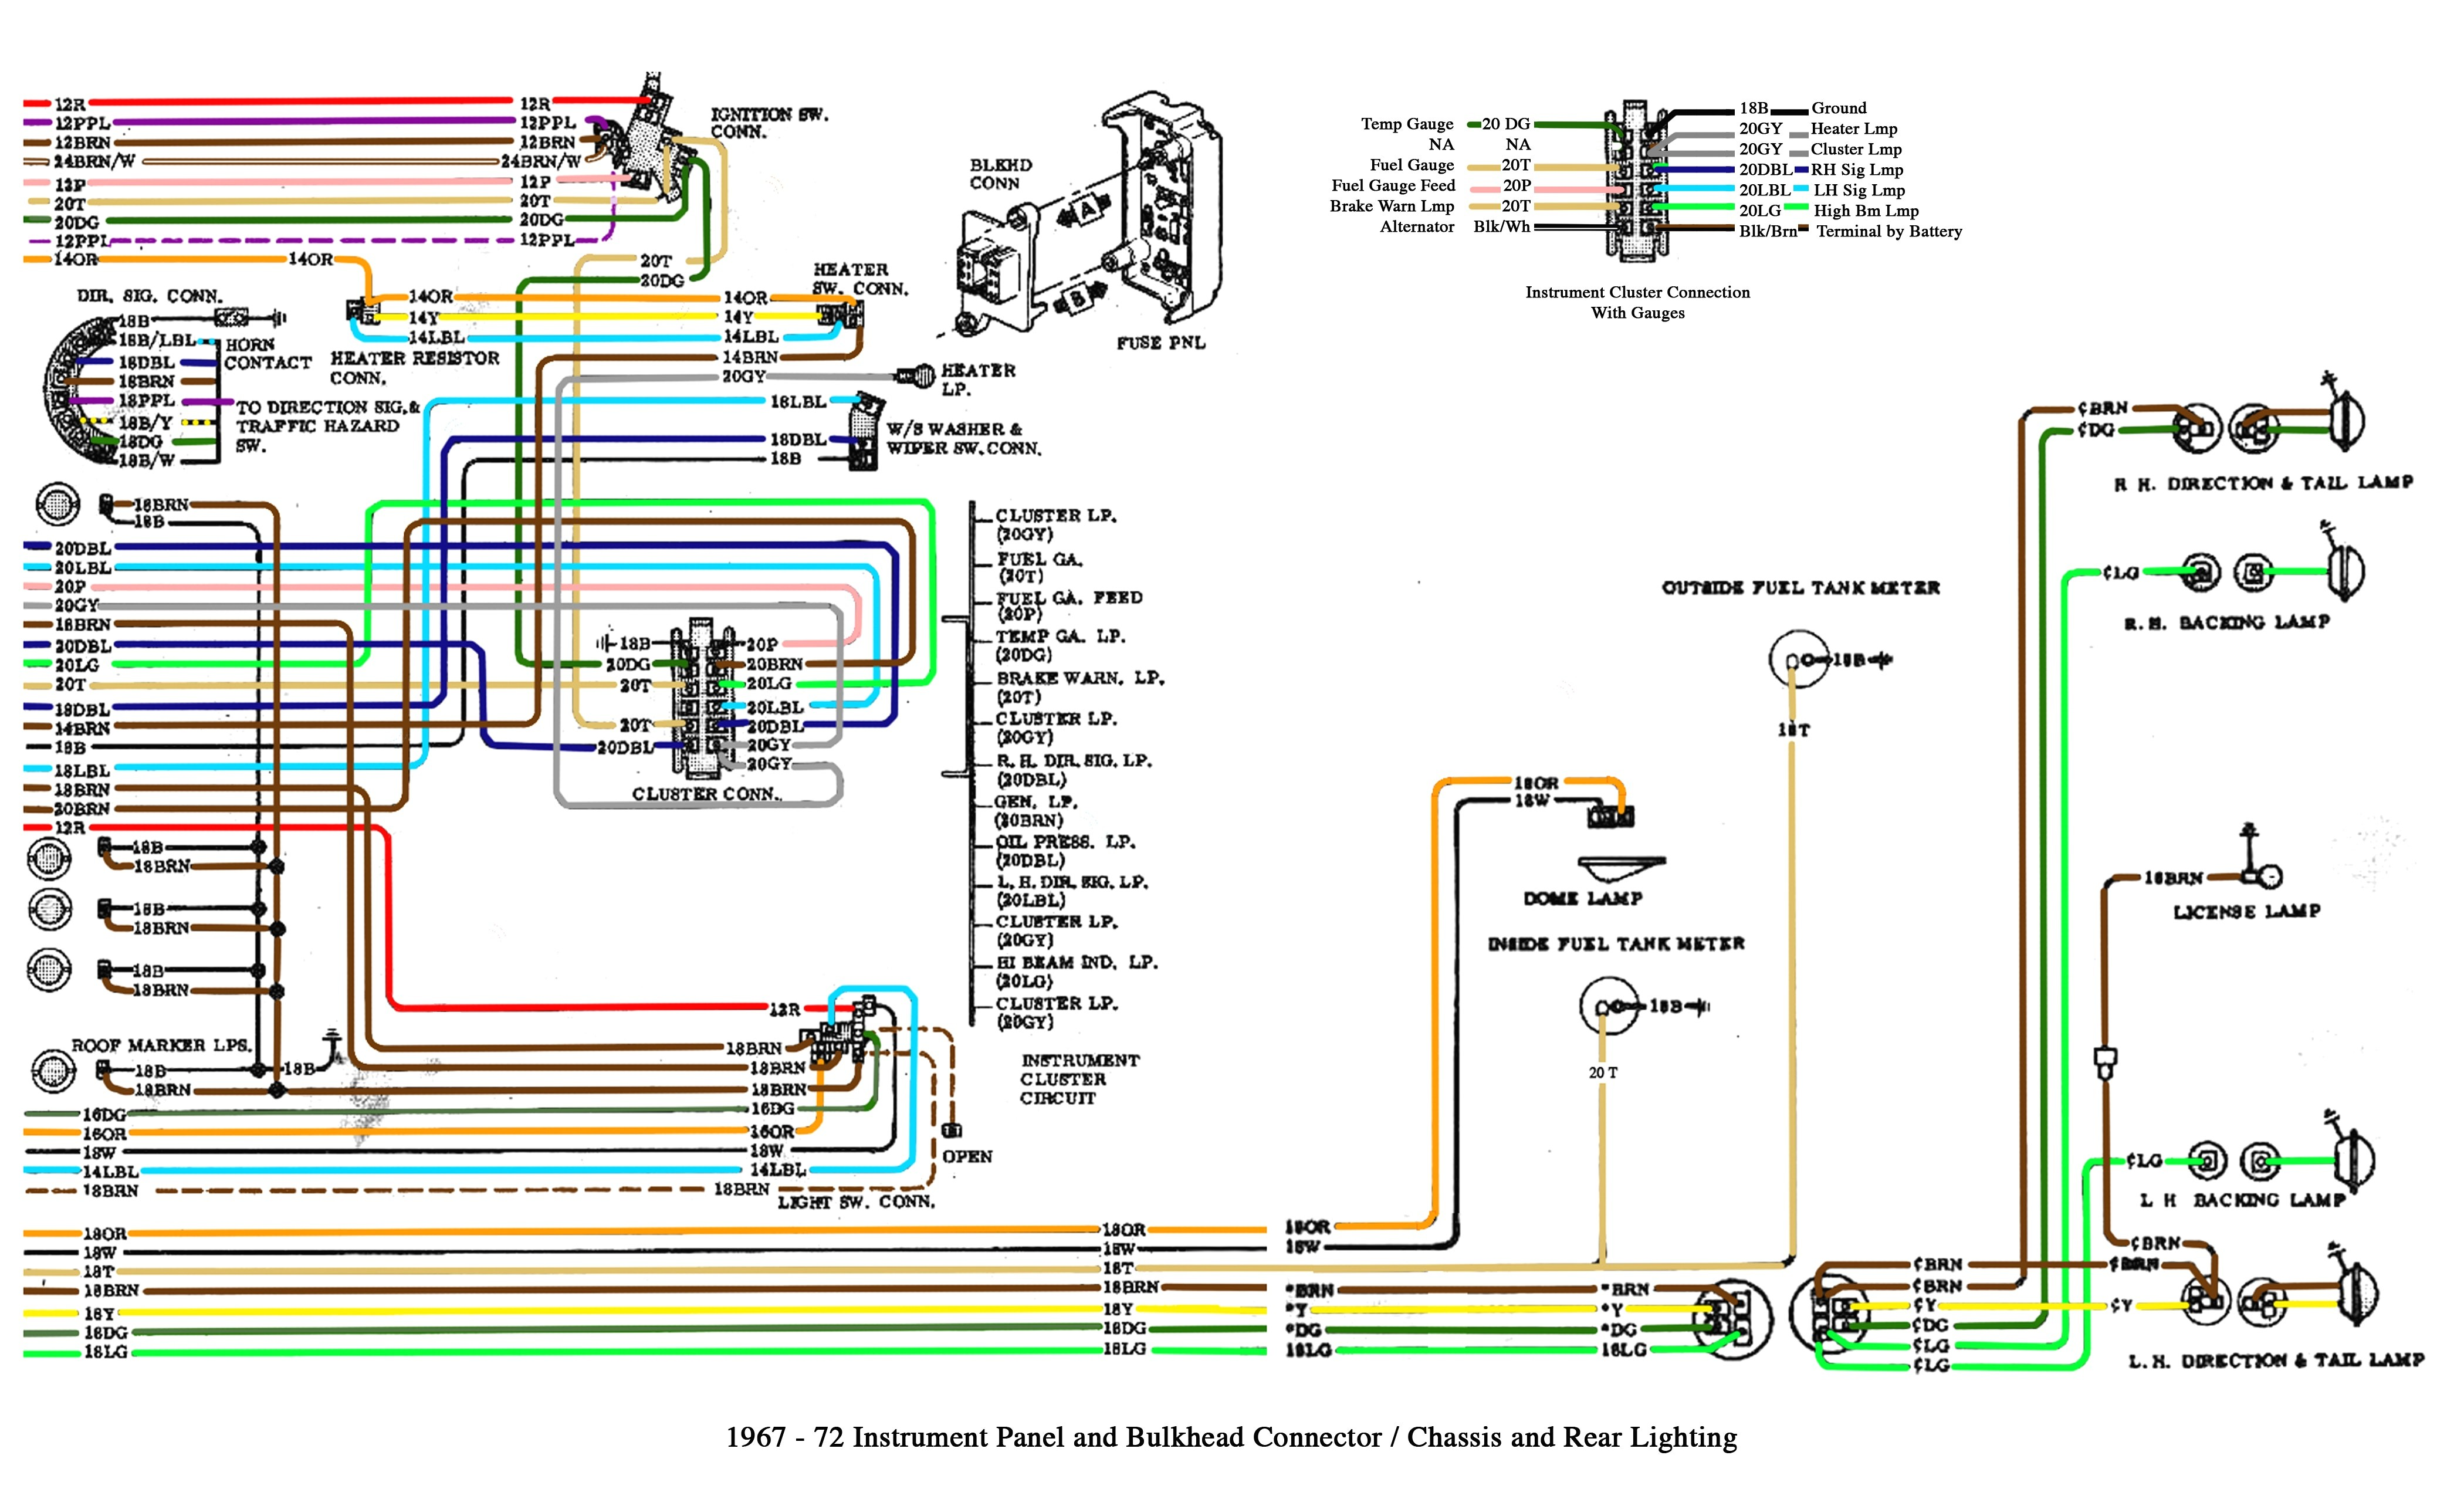 2000 Chevy Silverado Engine Diagram Unique 2003 Chevy Silverado Wiring Diagram I Have A 2003 Chevrolet Of 2000 Chevy Silverado Engine Diagram